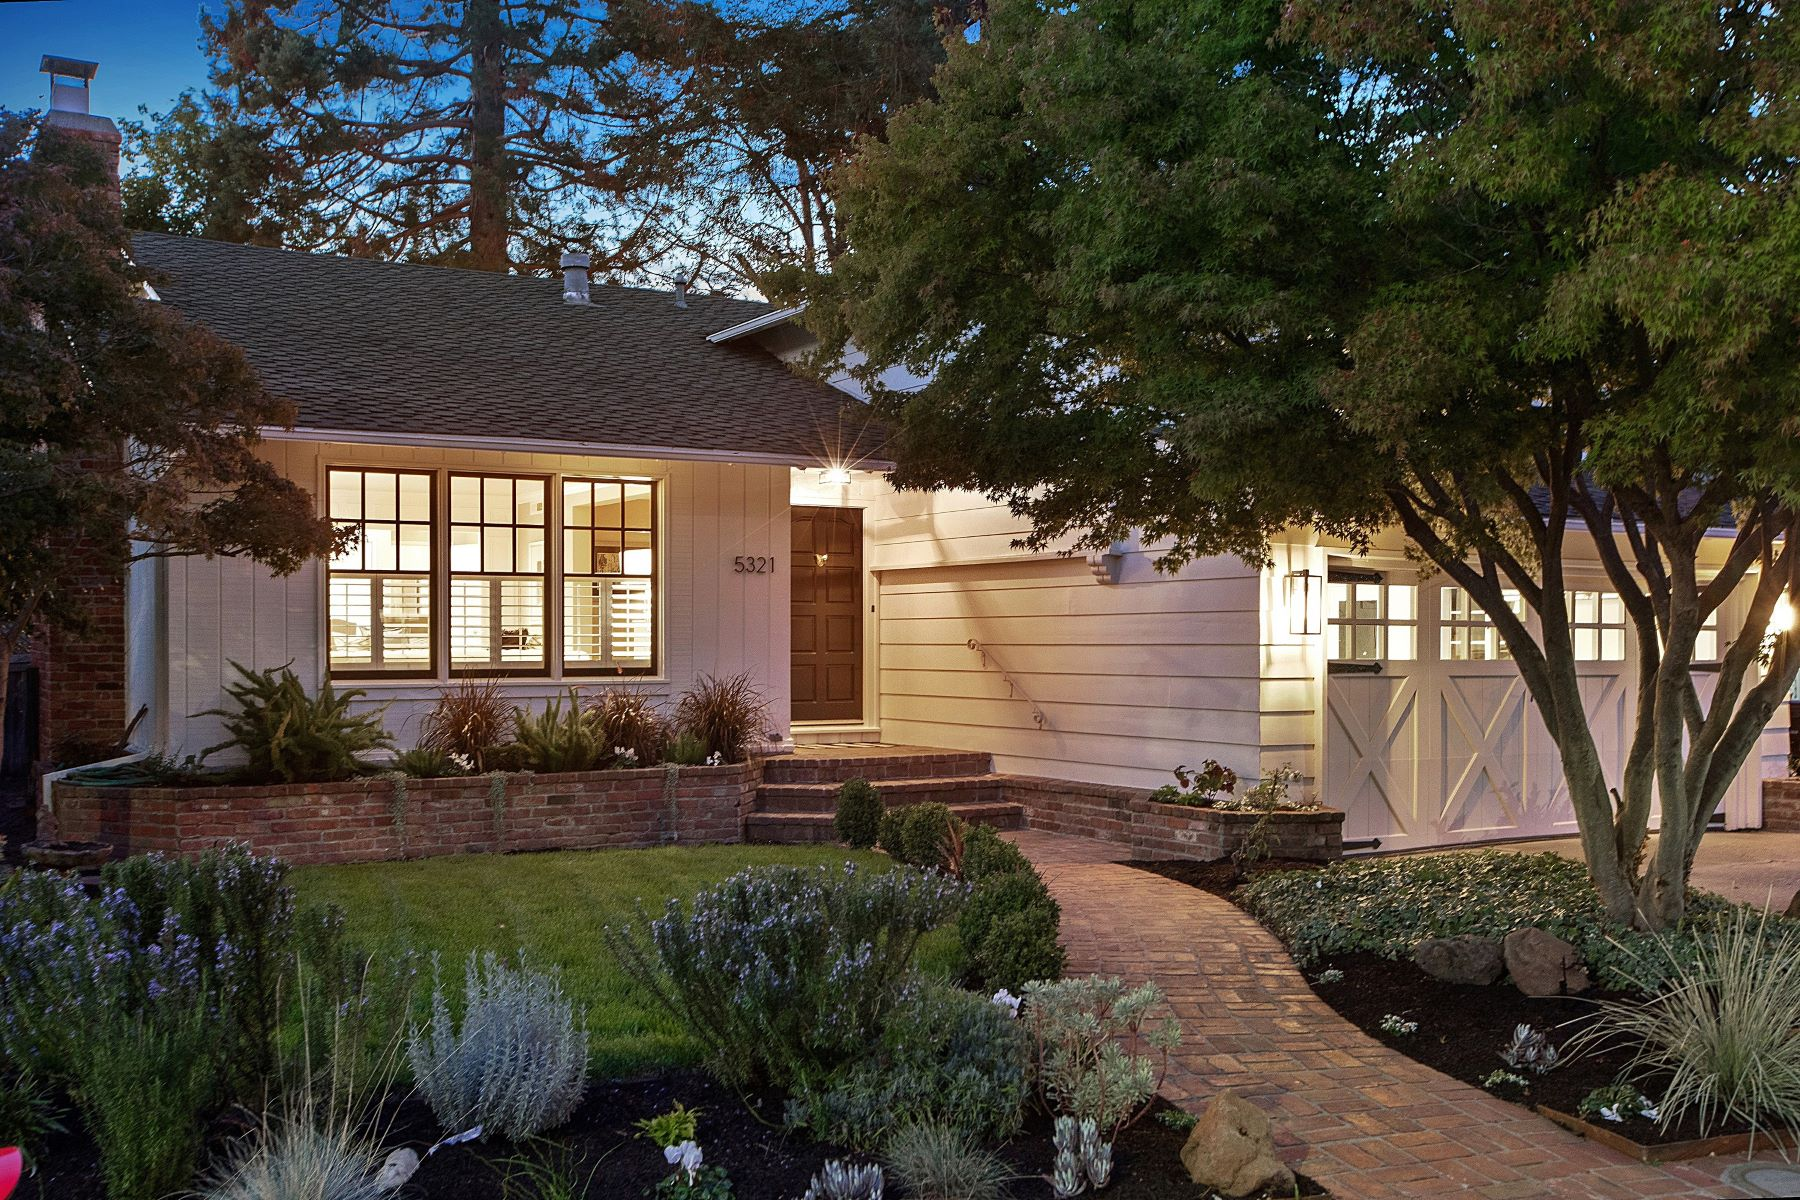 Single Family Homes for Sale at Updated Upper Rockridge Traditional 5321 Hilltop Crescent Oakland, California 94618 United States